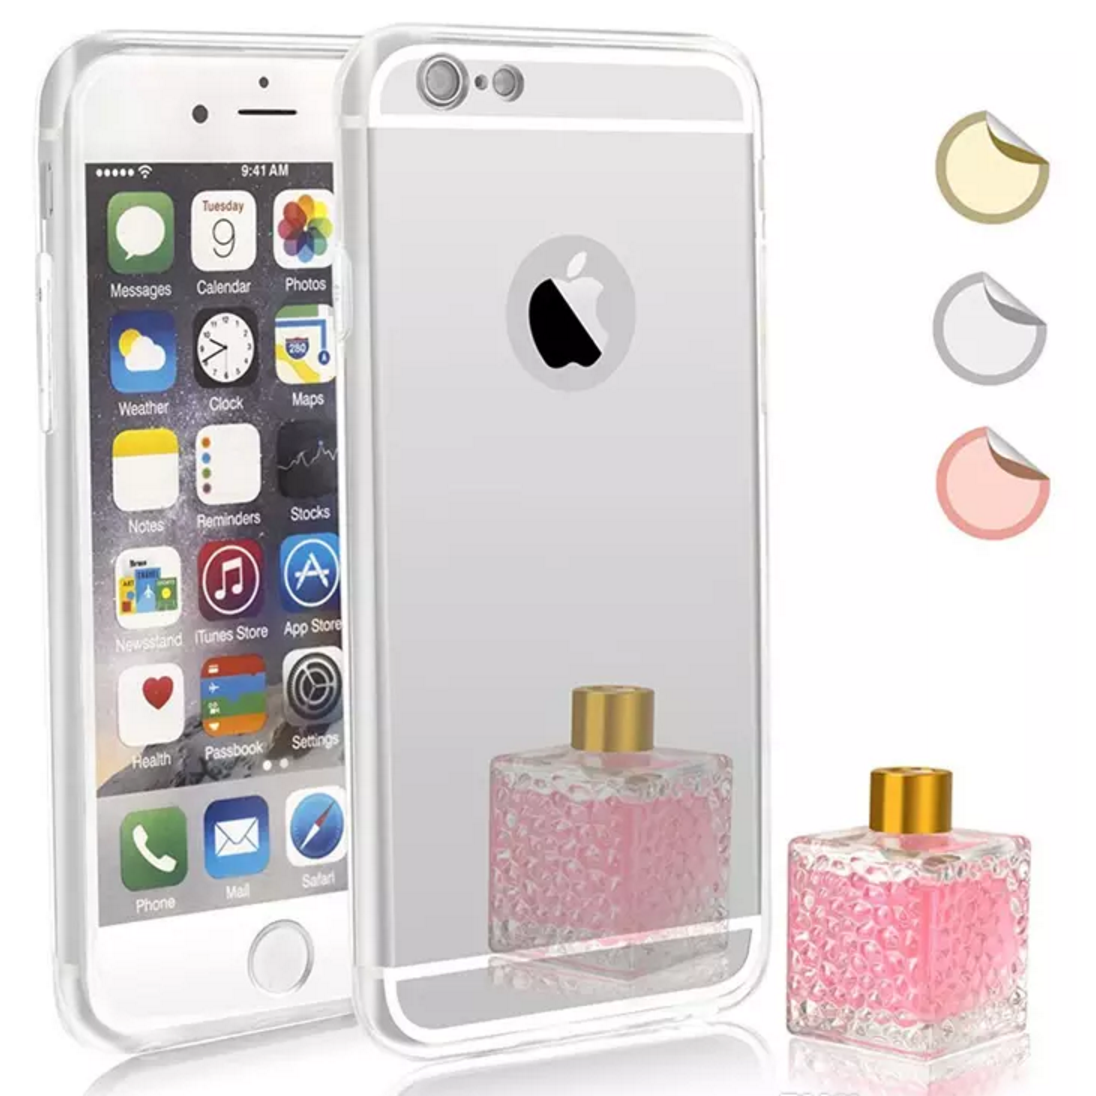 iphone 6 mirror soft case silver canadian cell parts. Black Bedroom Furniture Sets. Home Design Ideas